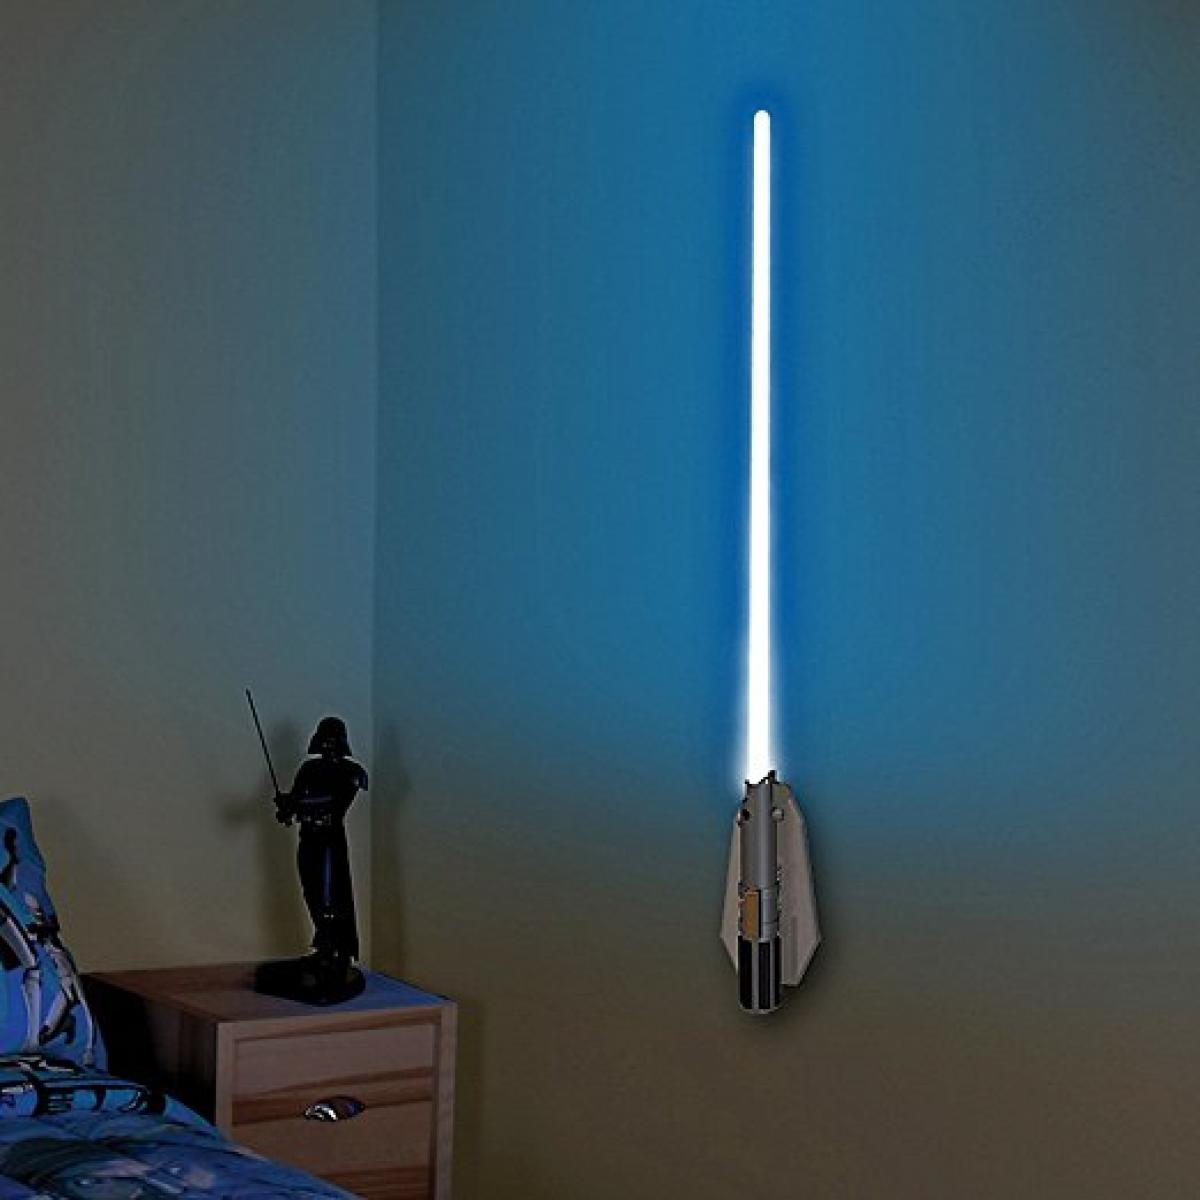 Star Wars Deluxe Lightsaber Room Light